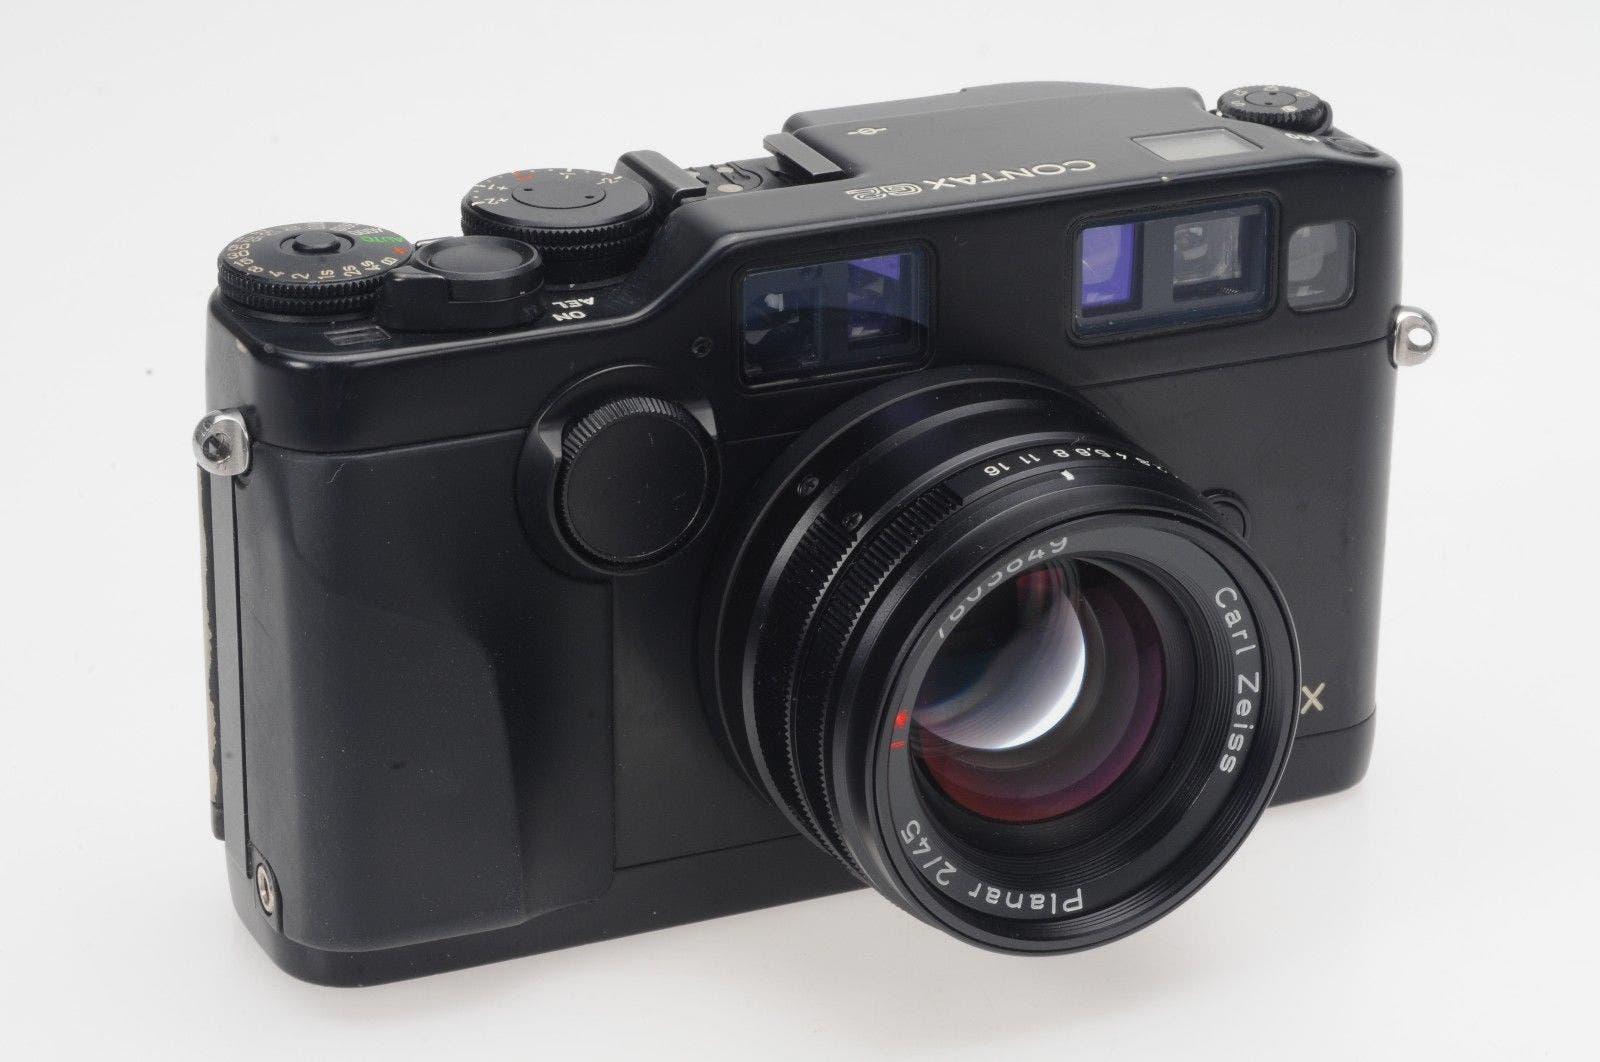 Please Make a Full Frame, Rangefinder Like Autofocus Camera